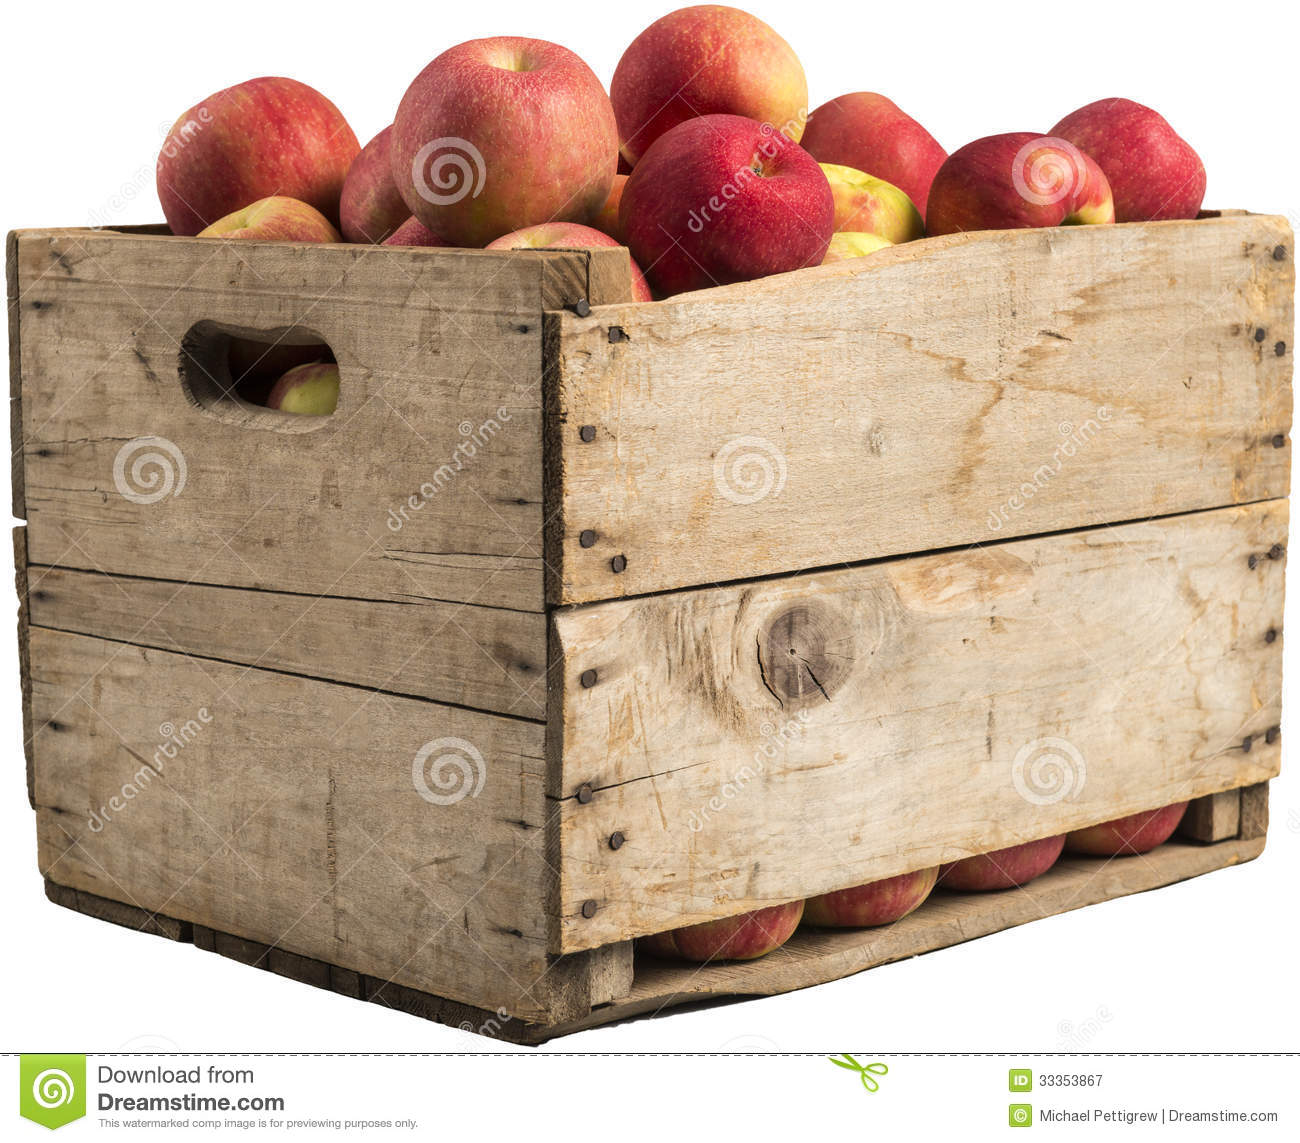 Crate full of apples stock image image of produce rustic for How to make apple crates